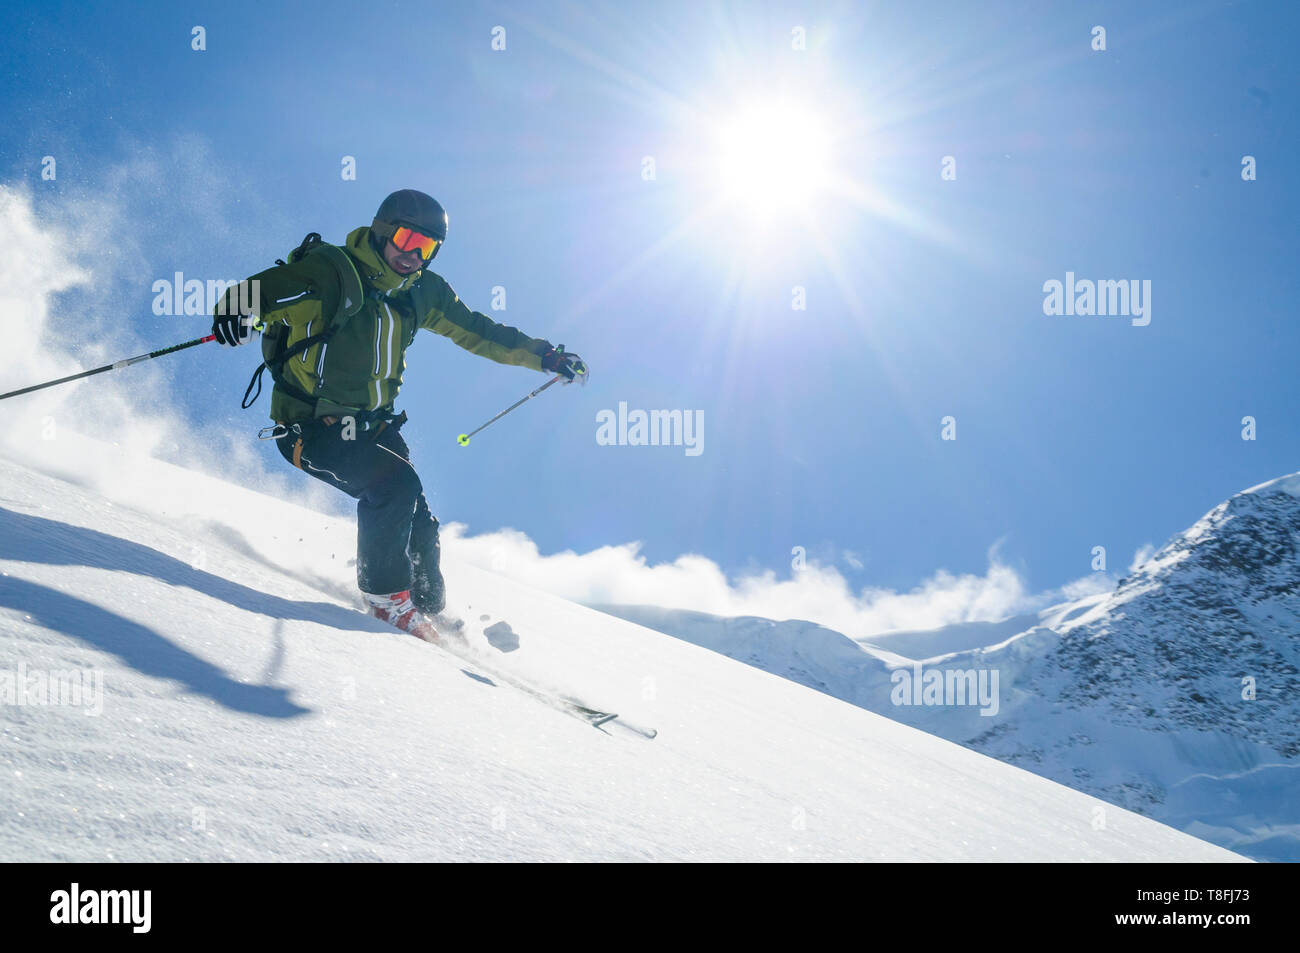 Expert skier on Monte Rosa glaciers in impressive high alpine nature Stock Photo